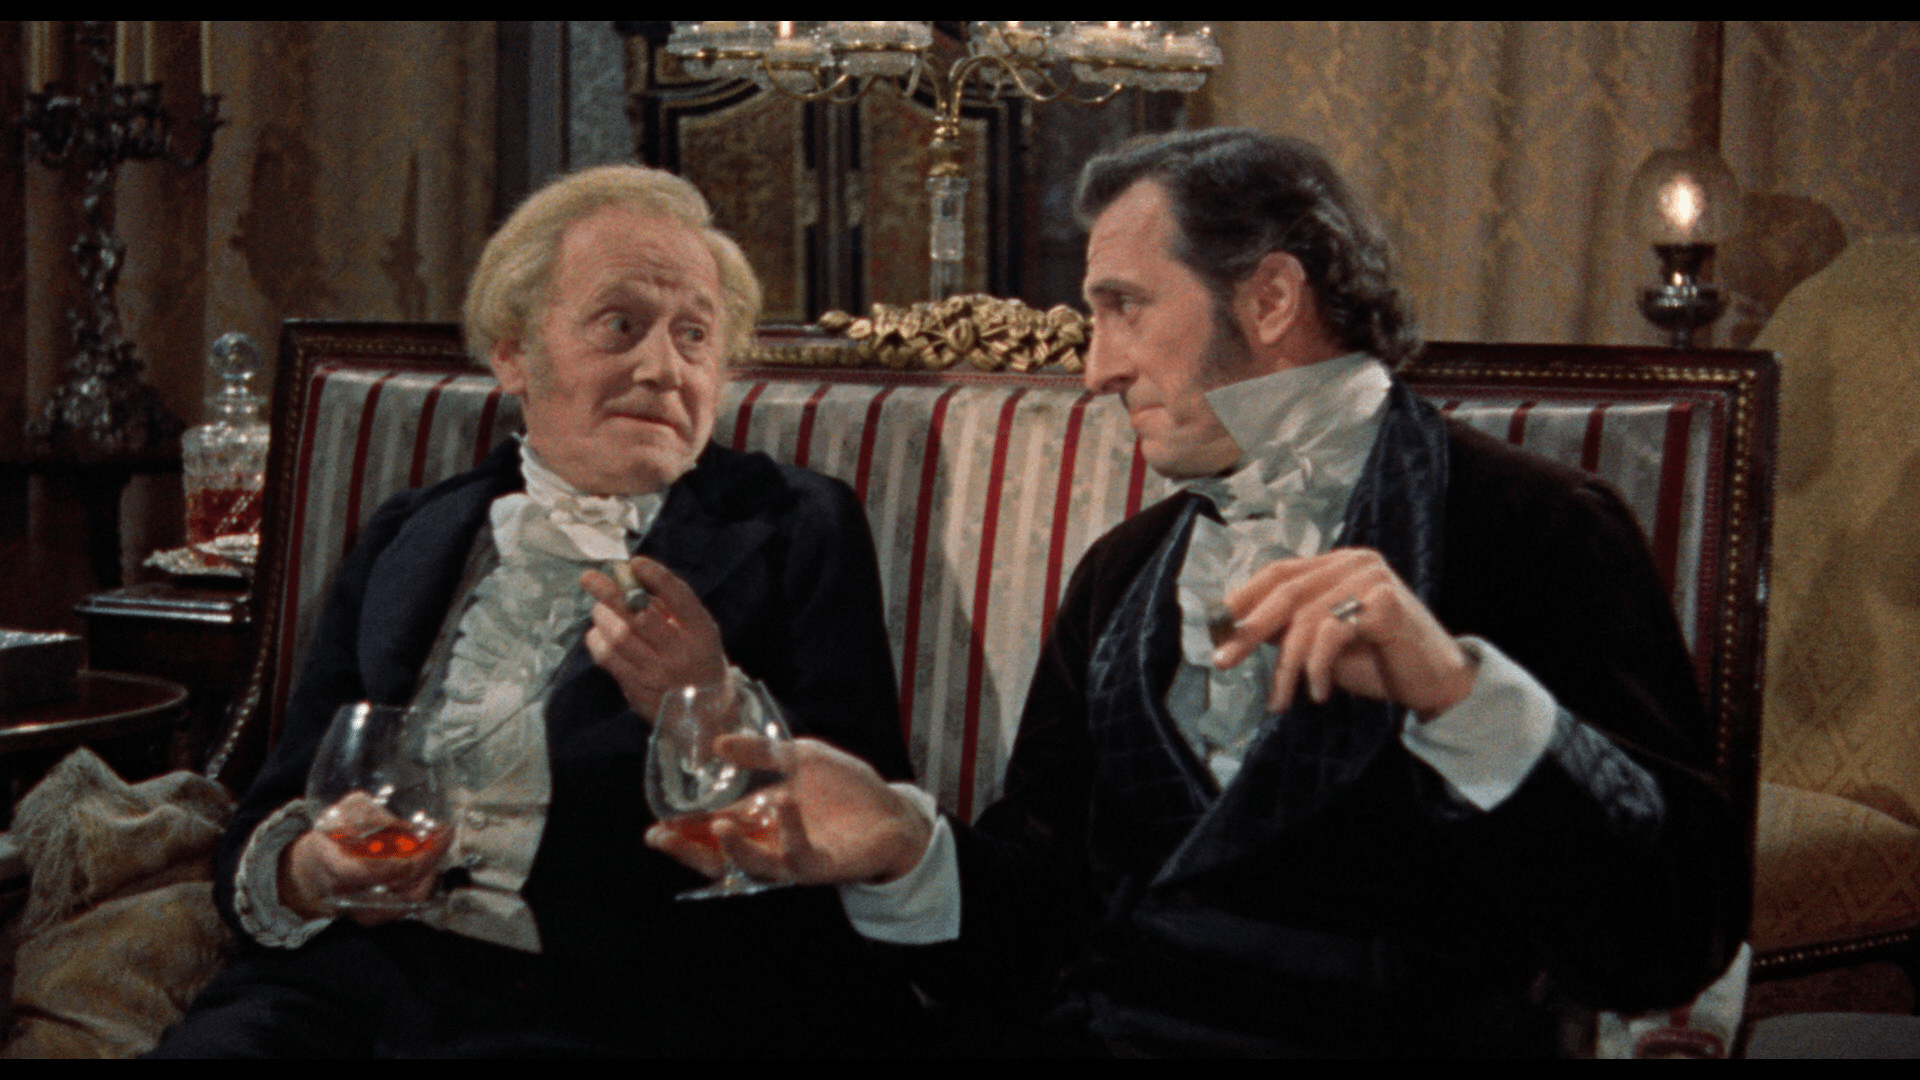 The Curse of Frankenstein (1957) [Warner Archive Blu-ray review] 12